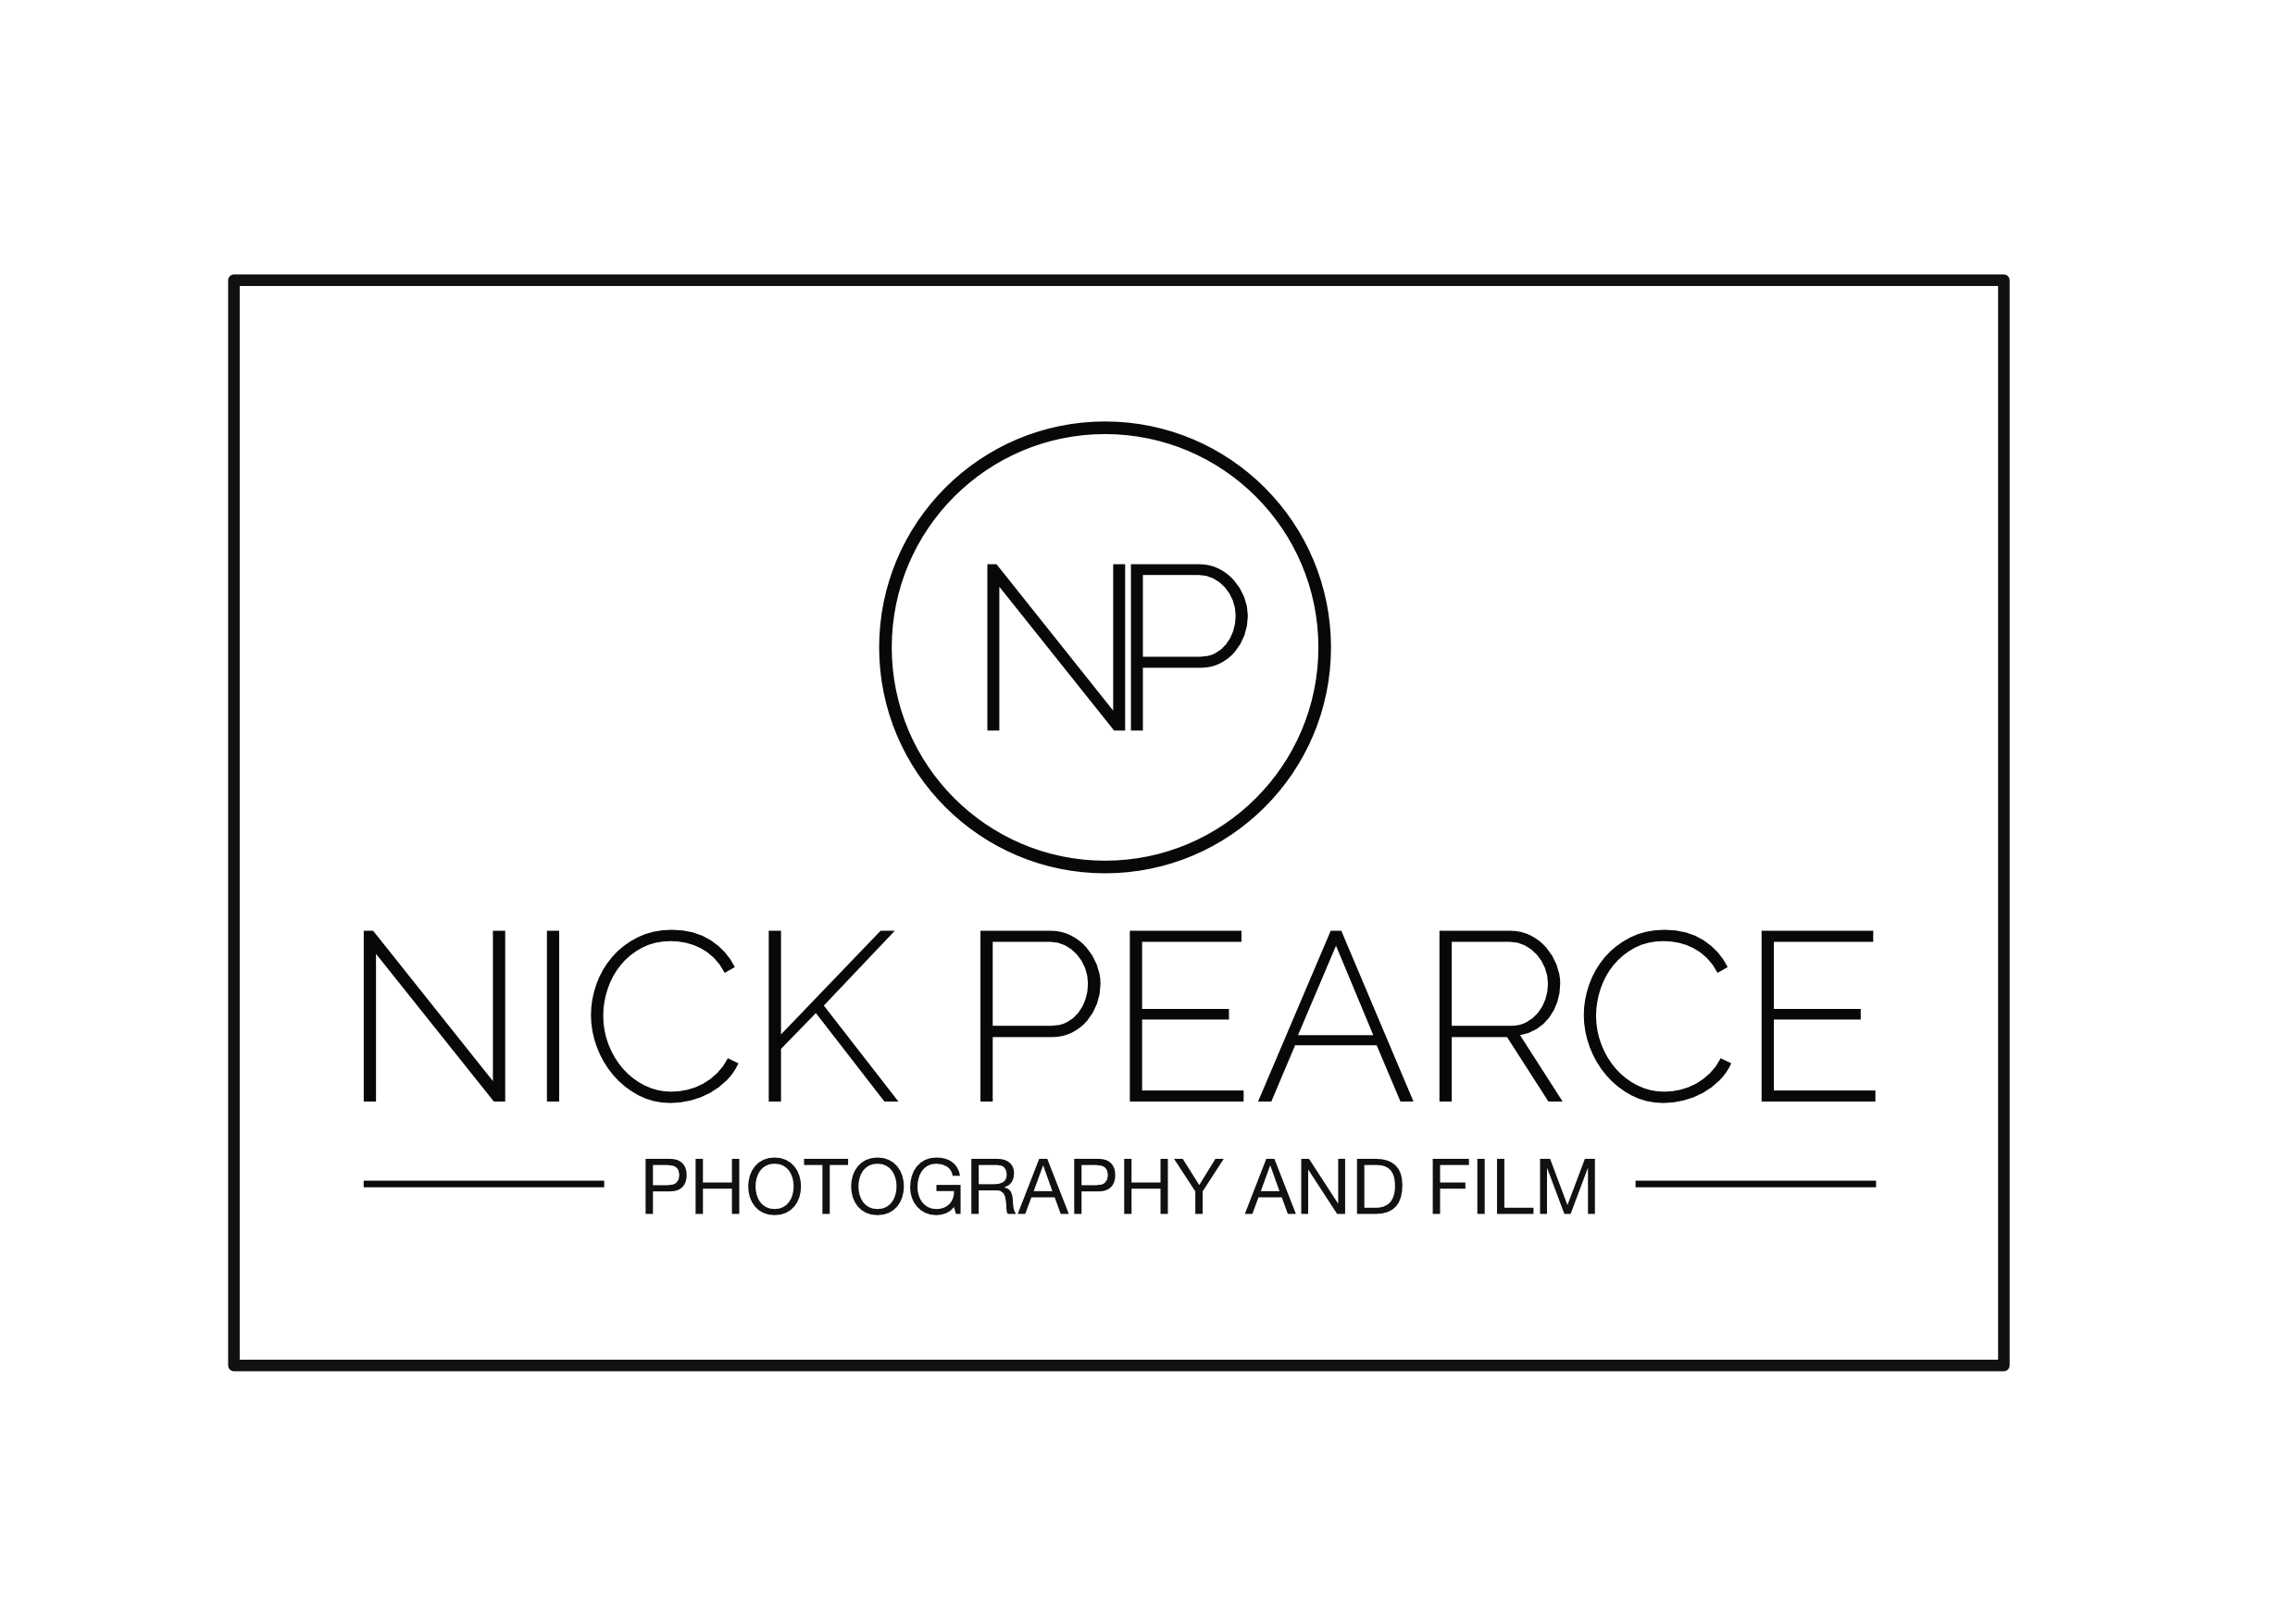 NICK PEARCE